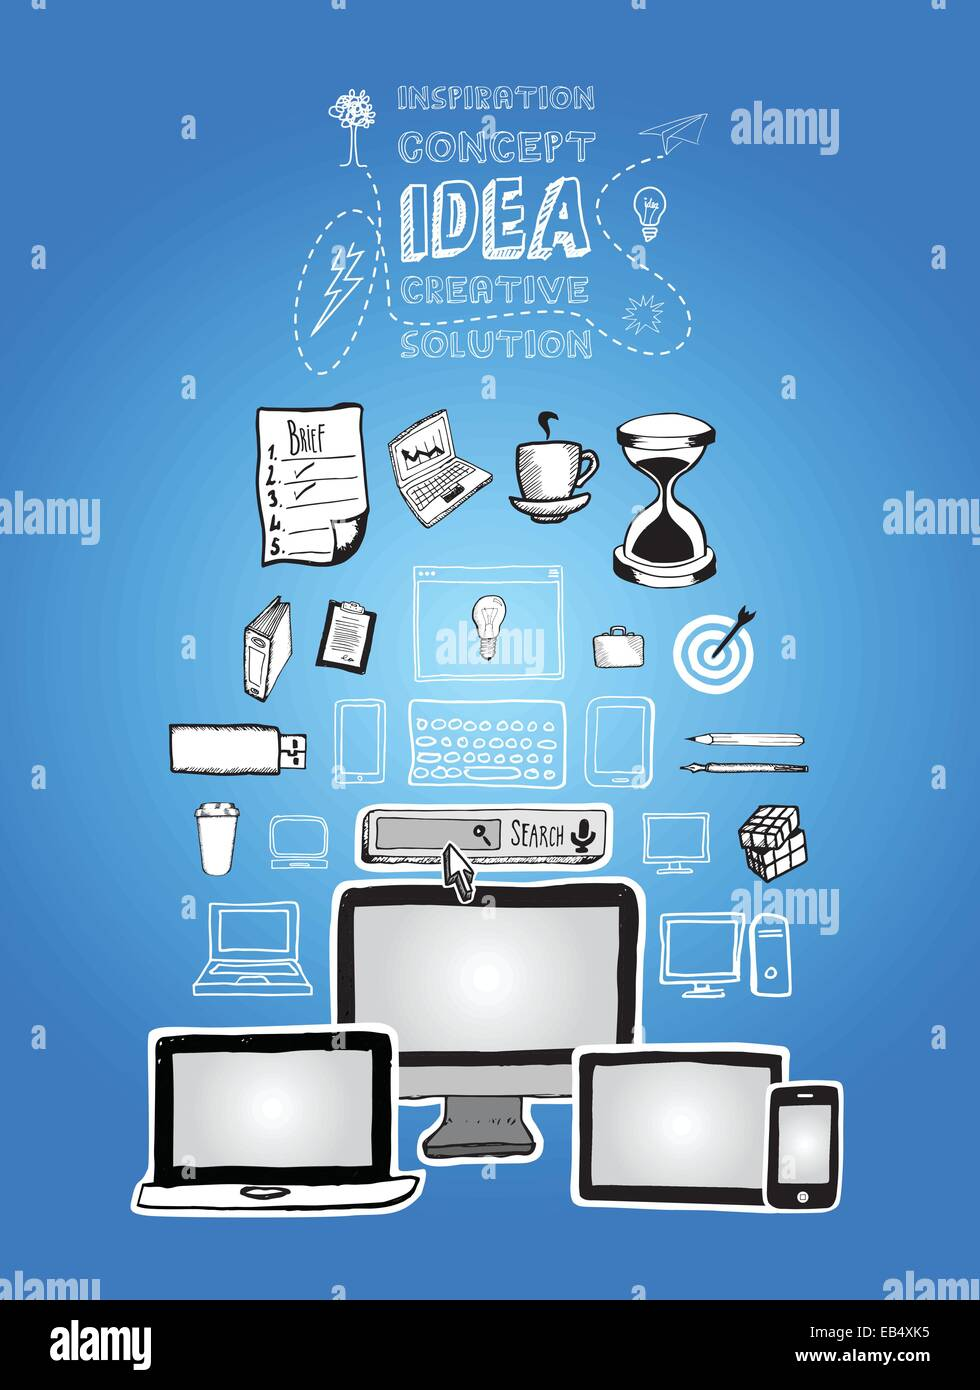 Media devices vector with internet search bar and business illustrations - Stock Vector